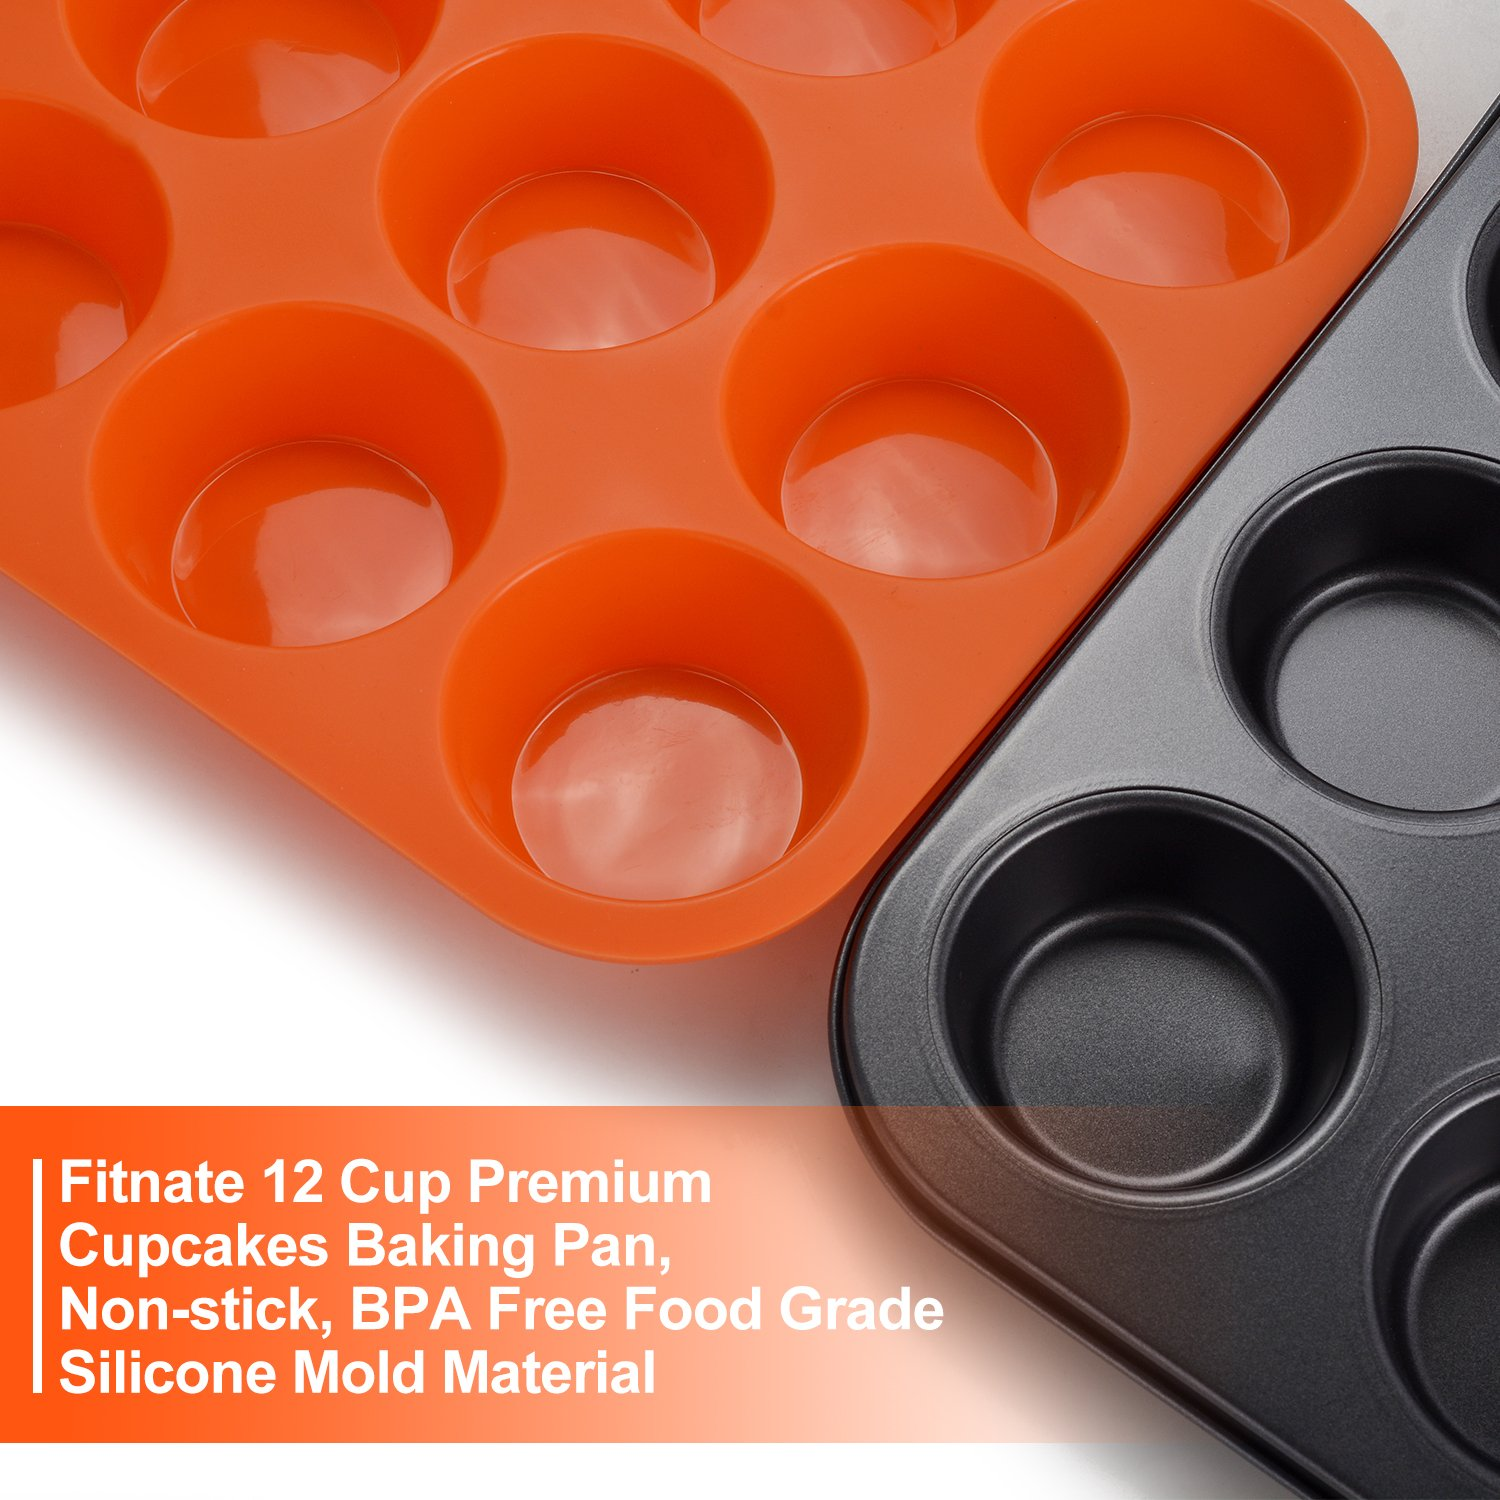 FITNATE Bakeware Silicone Muffin Pan 12 Cup, BPA-free, Non Stick by FITNATE (Image #3)